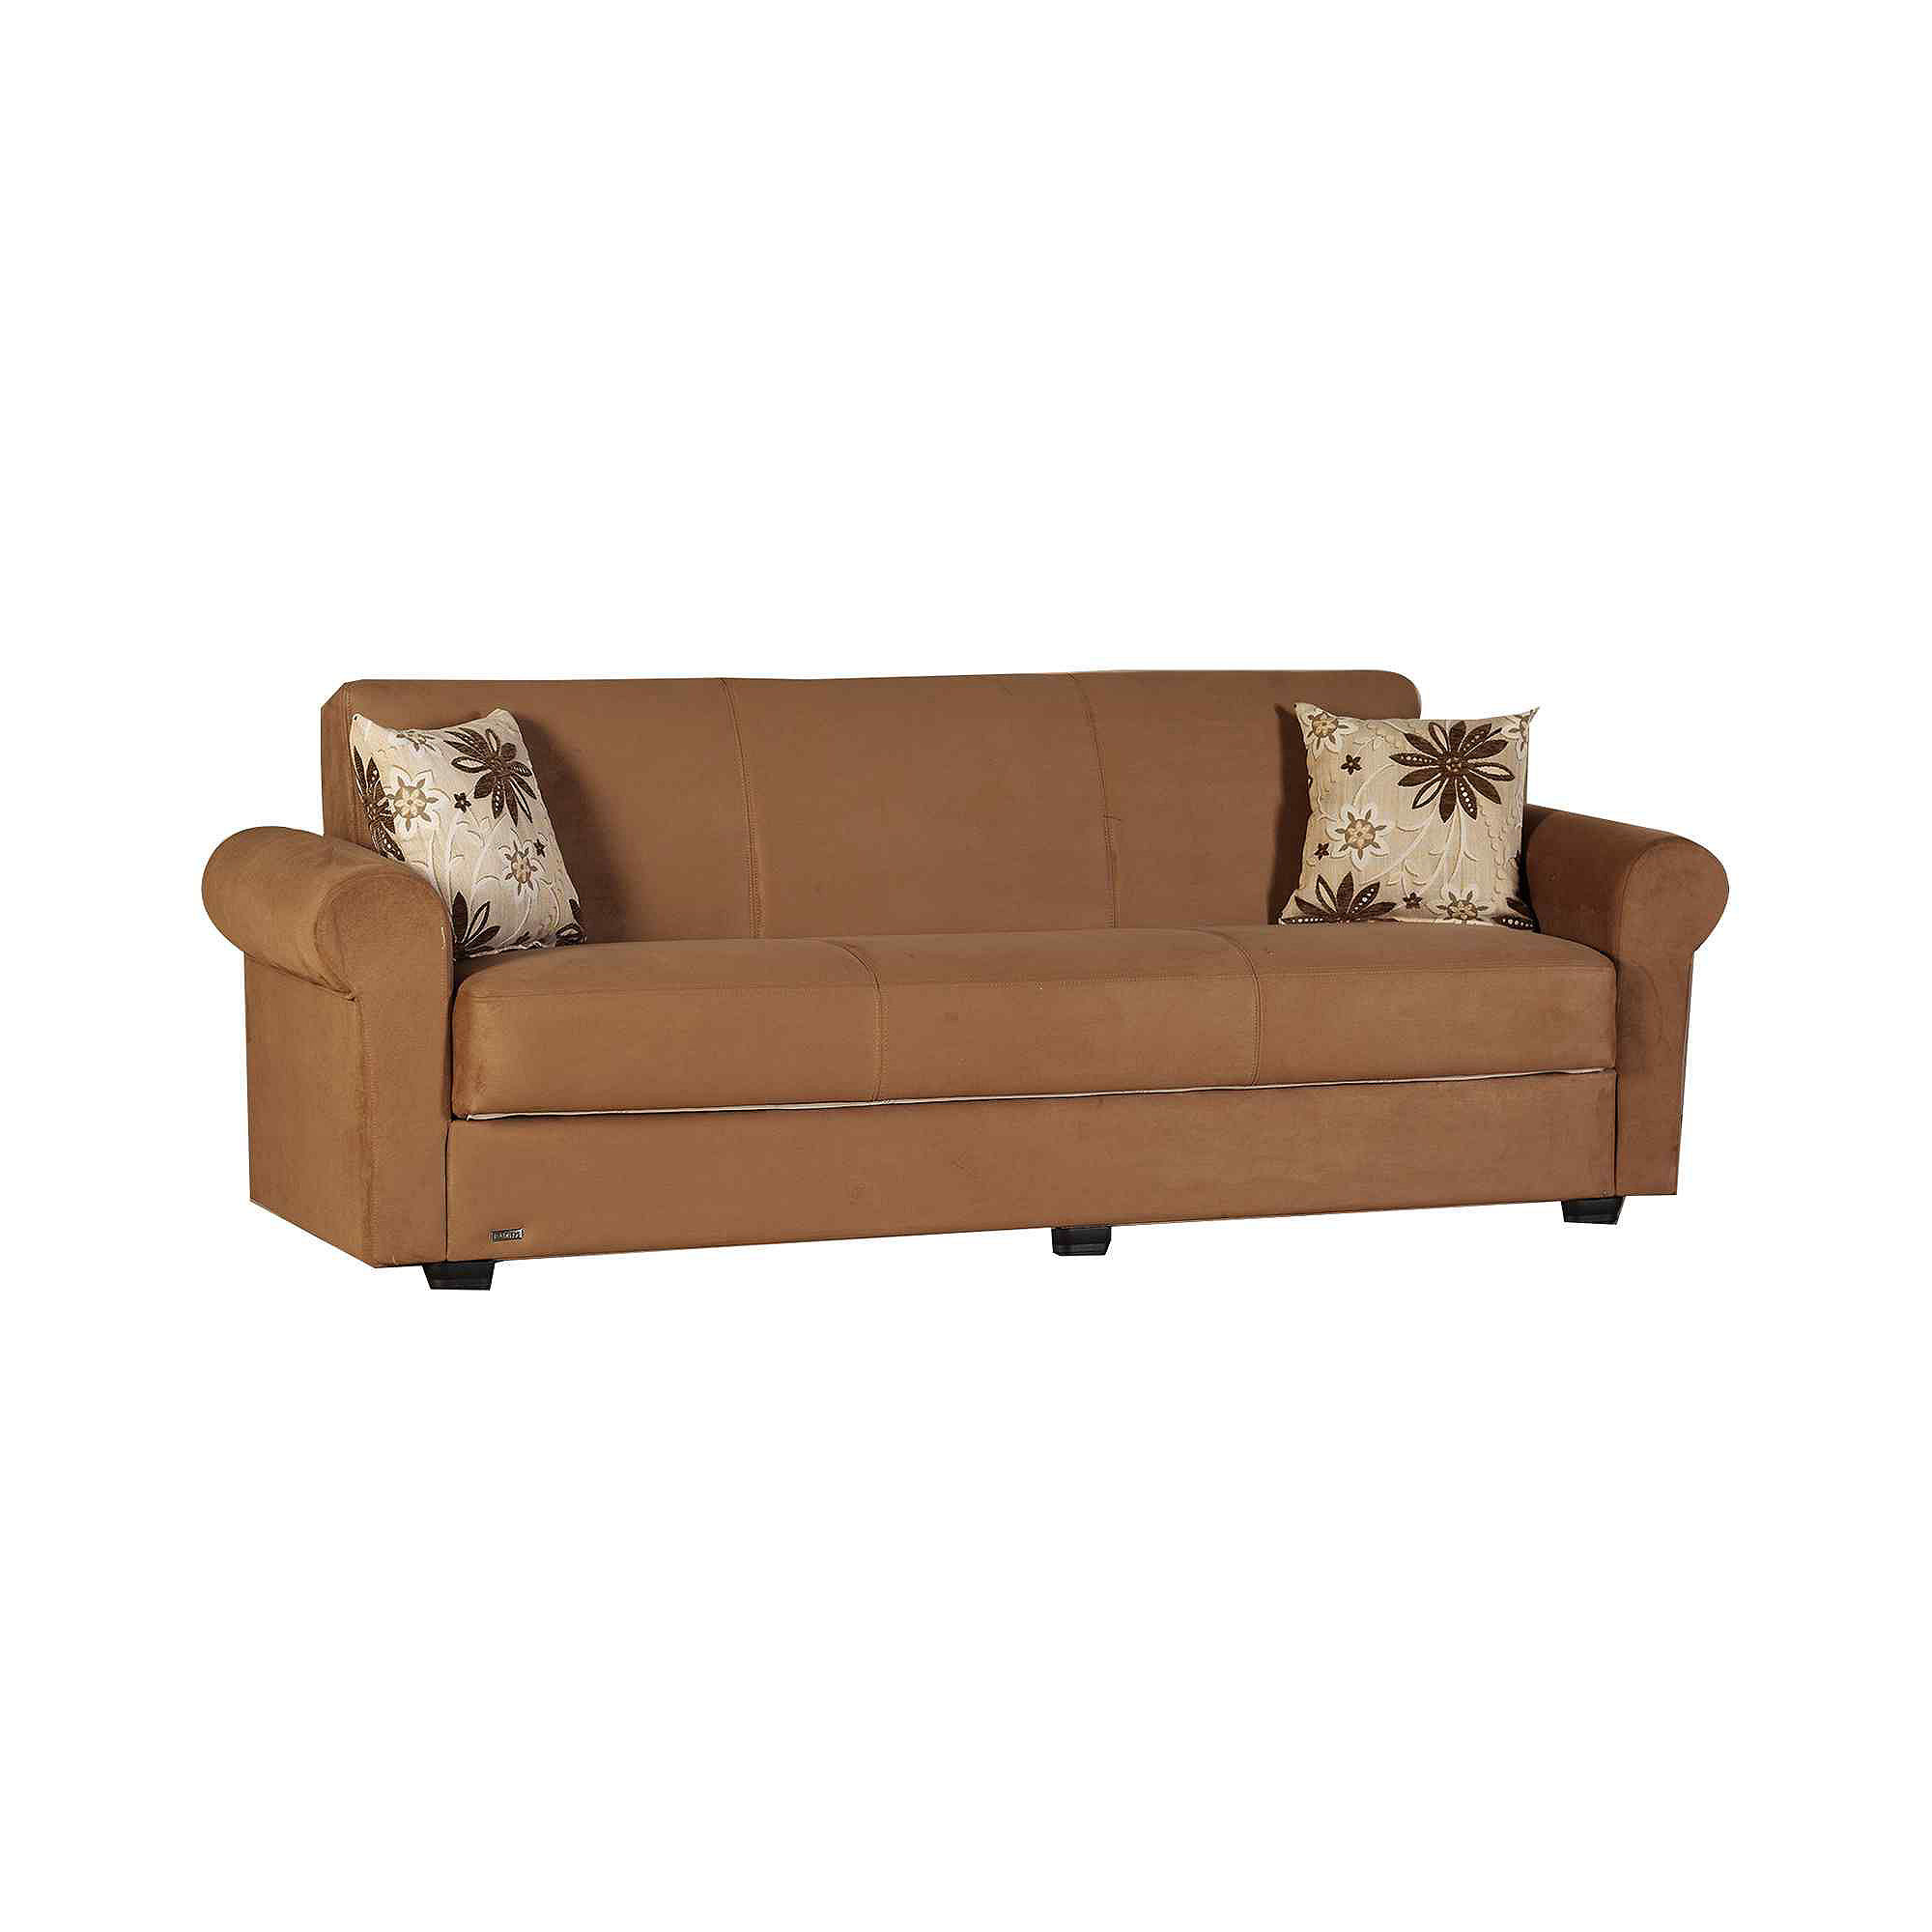 Jcpenney Sofa Beds Search